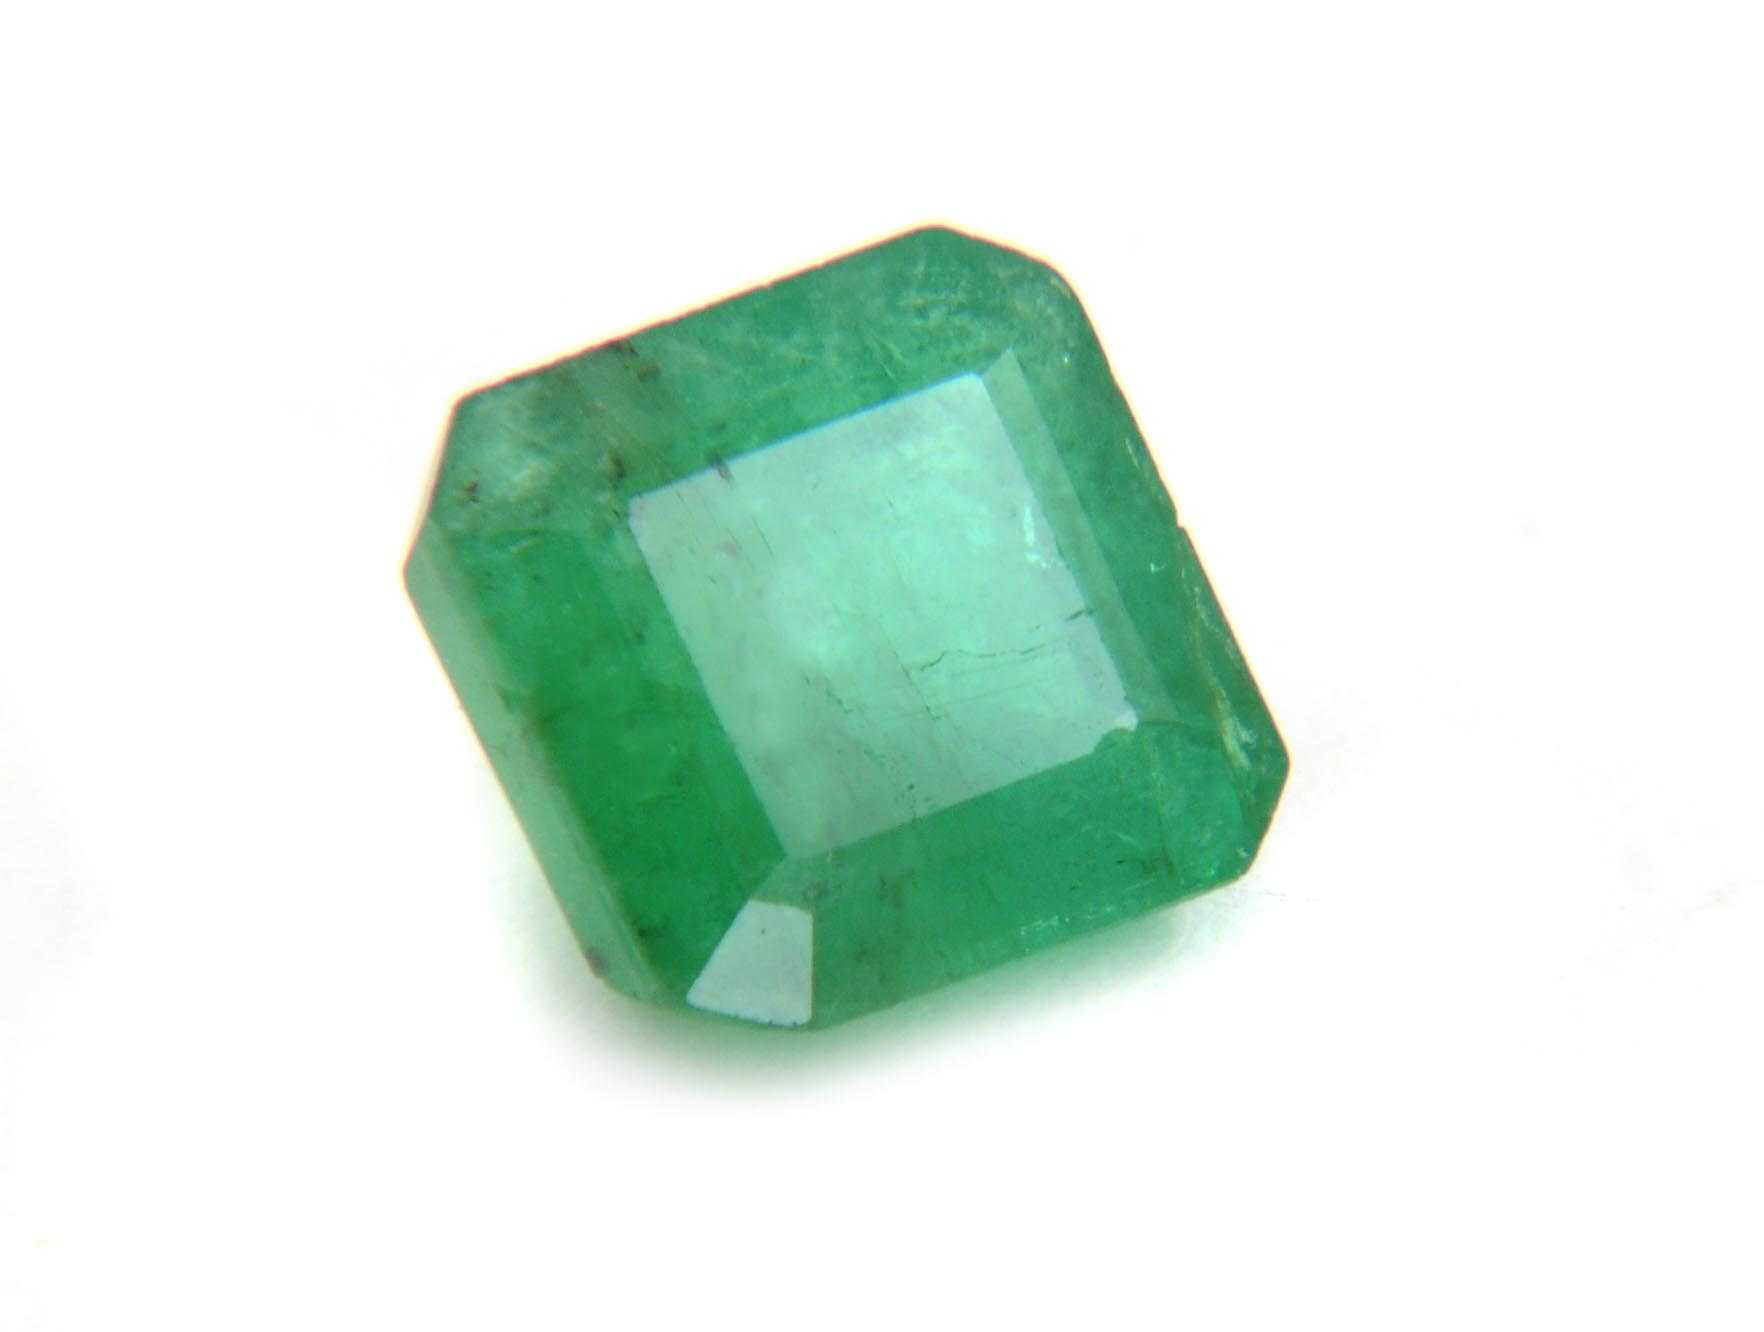 jewelry emerald article colombia and img gems information gemstone value crystal arkenstone price